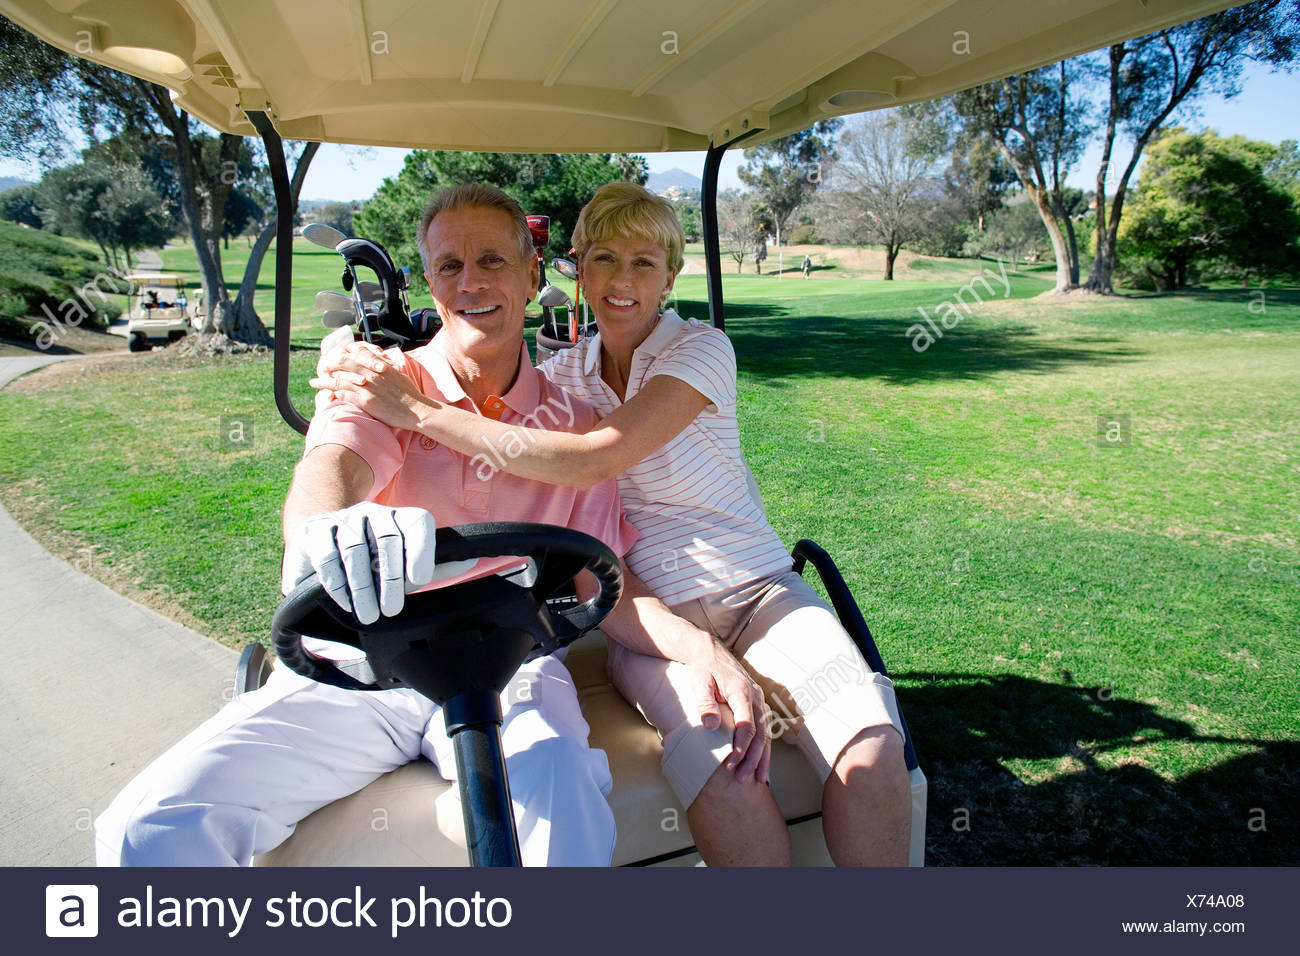 Mature couple sitting in golf buggy on golf course, man driving, woman embracing man, smiling, front view, portrait - Stock Image